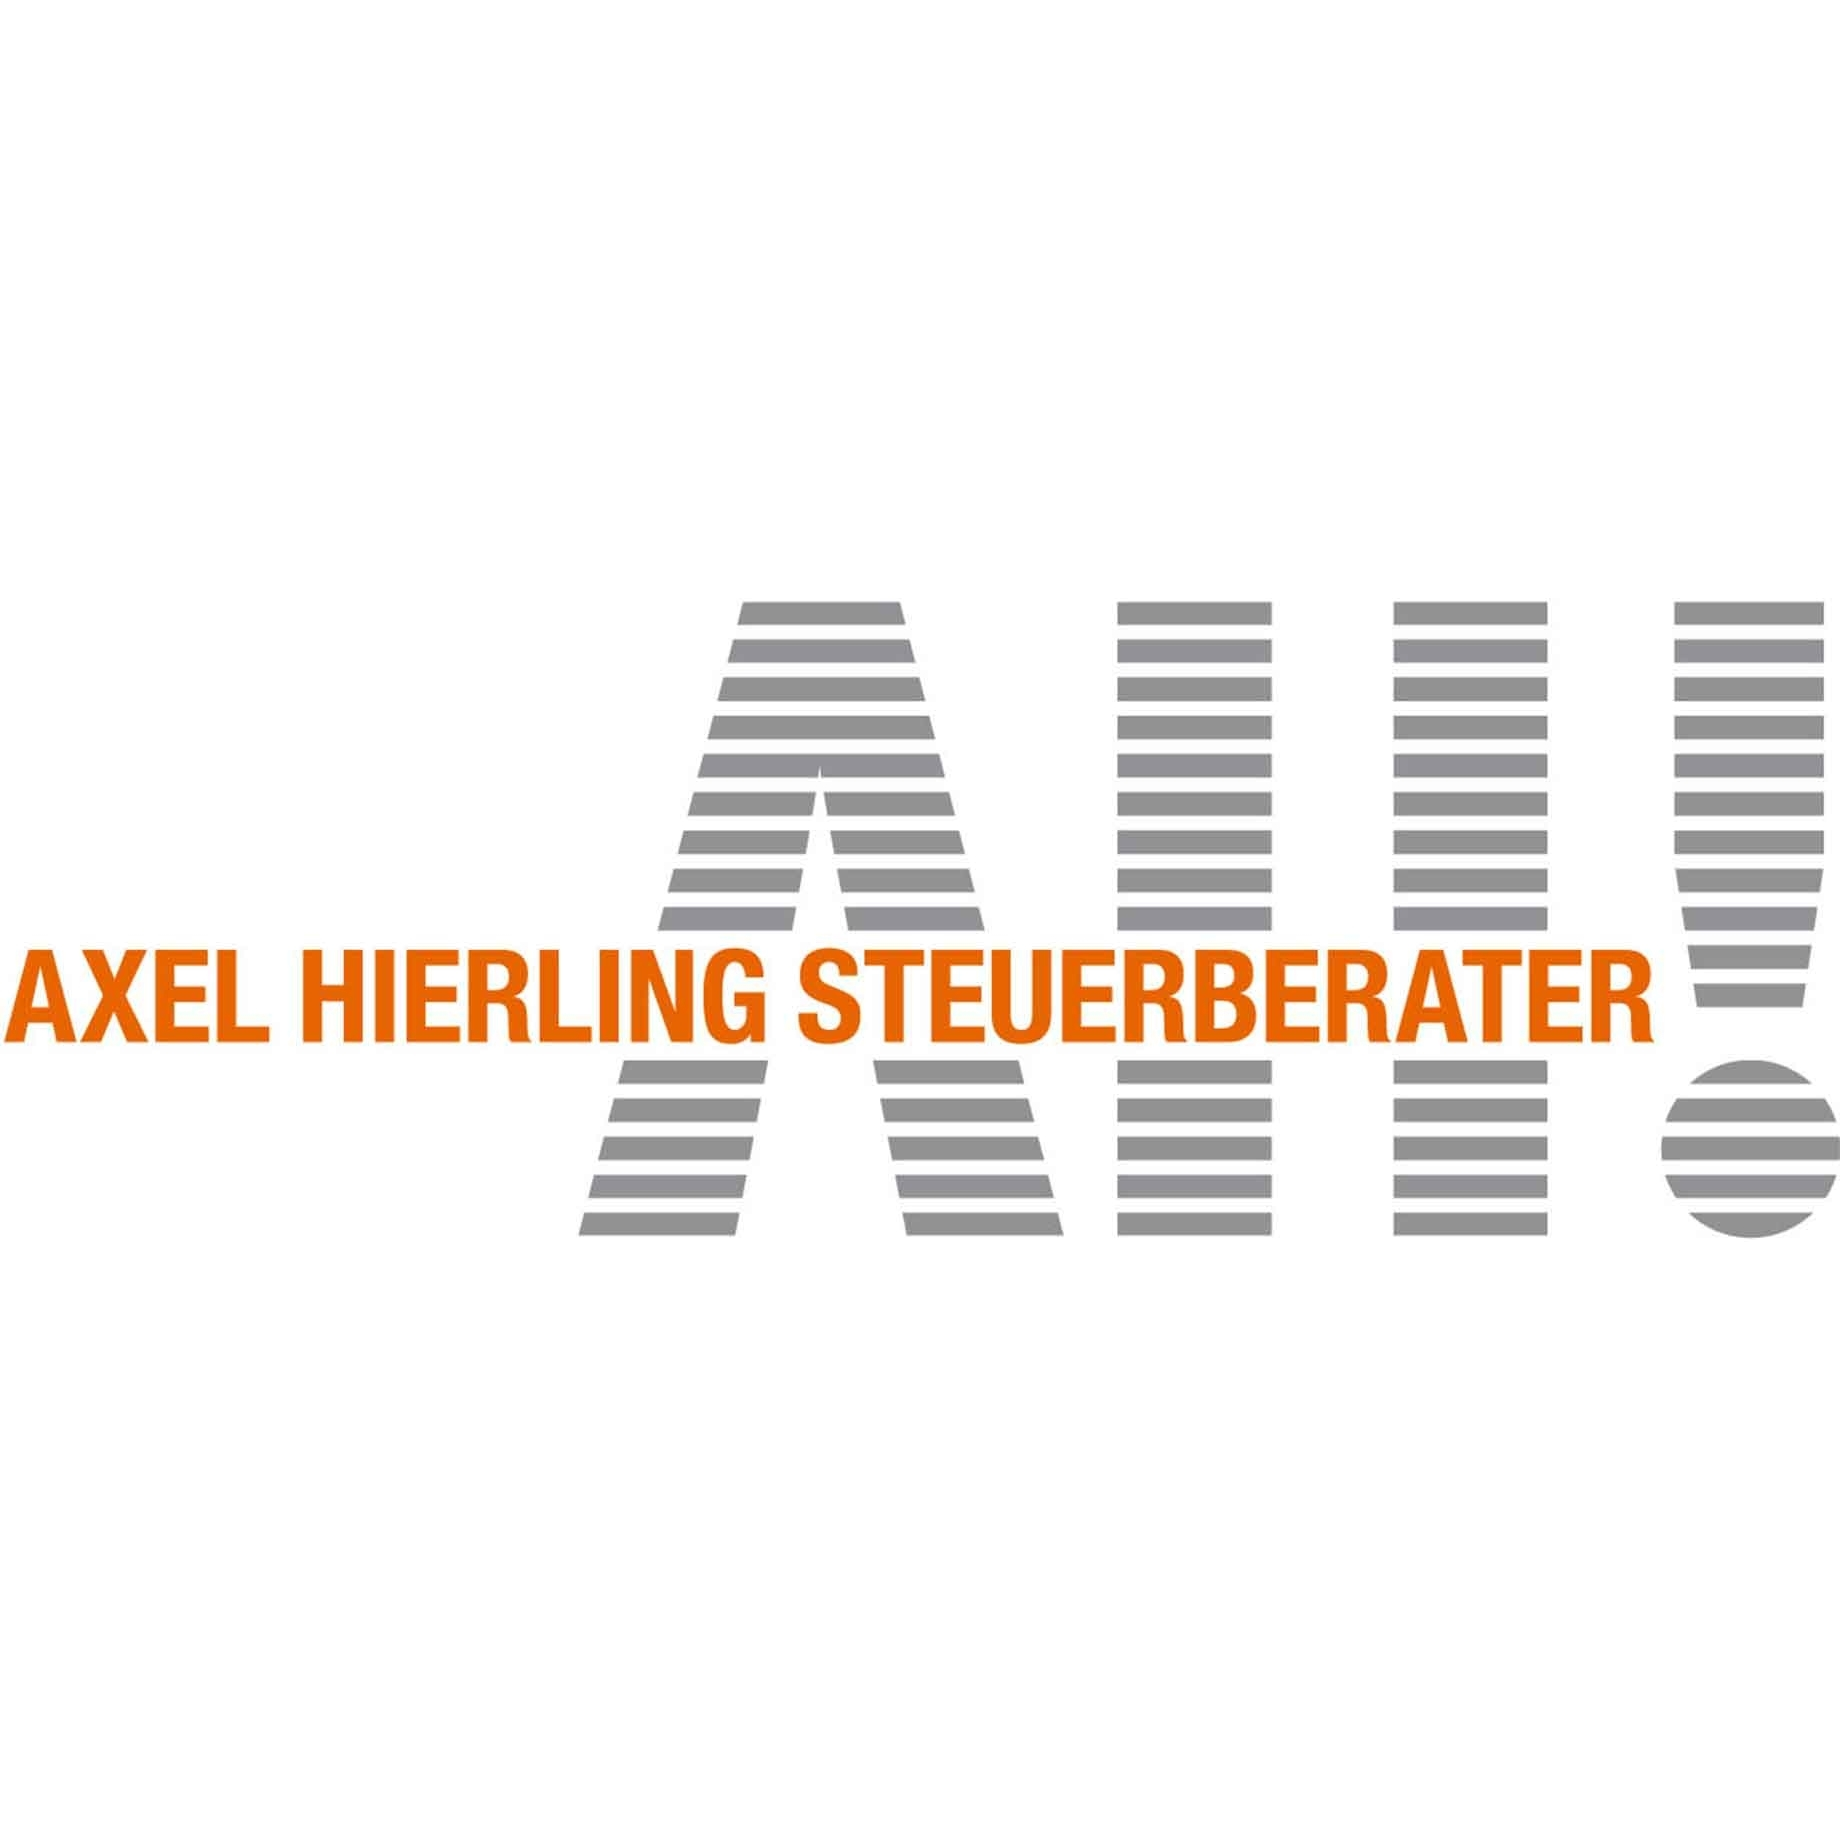 Axel Hierling Steuerberater